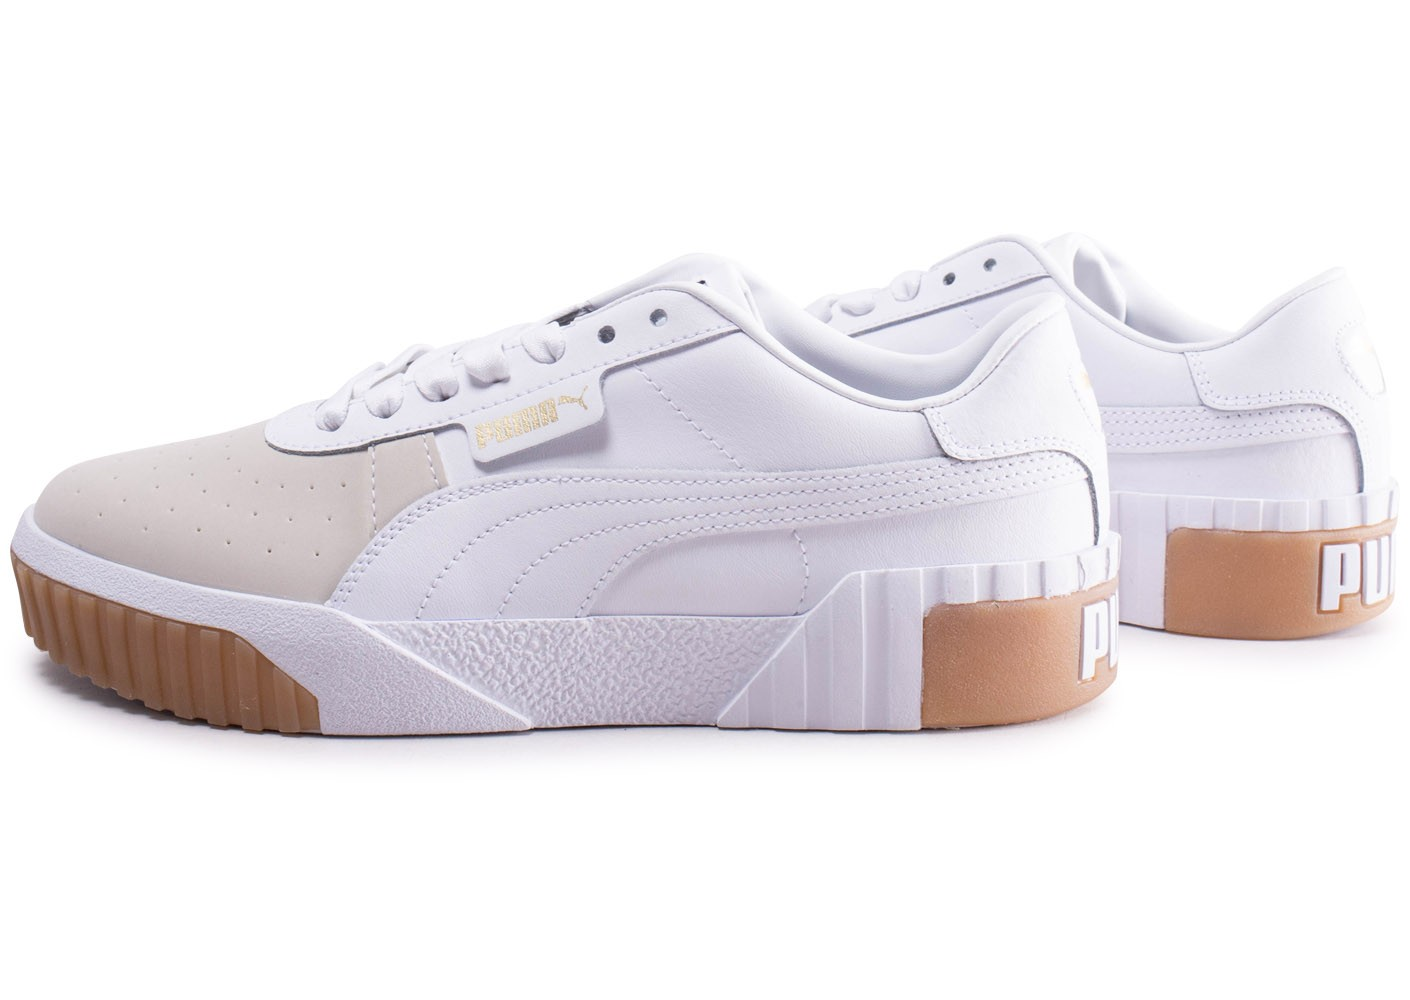 reputable site free shipping new lower prices Puma Cali Exotic blanc et beige femme - Chaussures Baskets ...